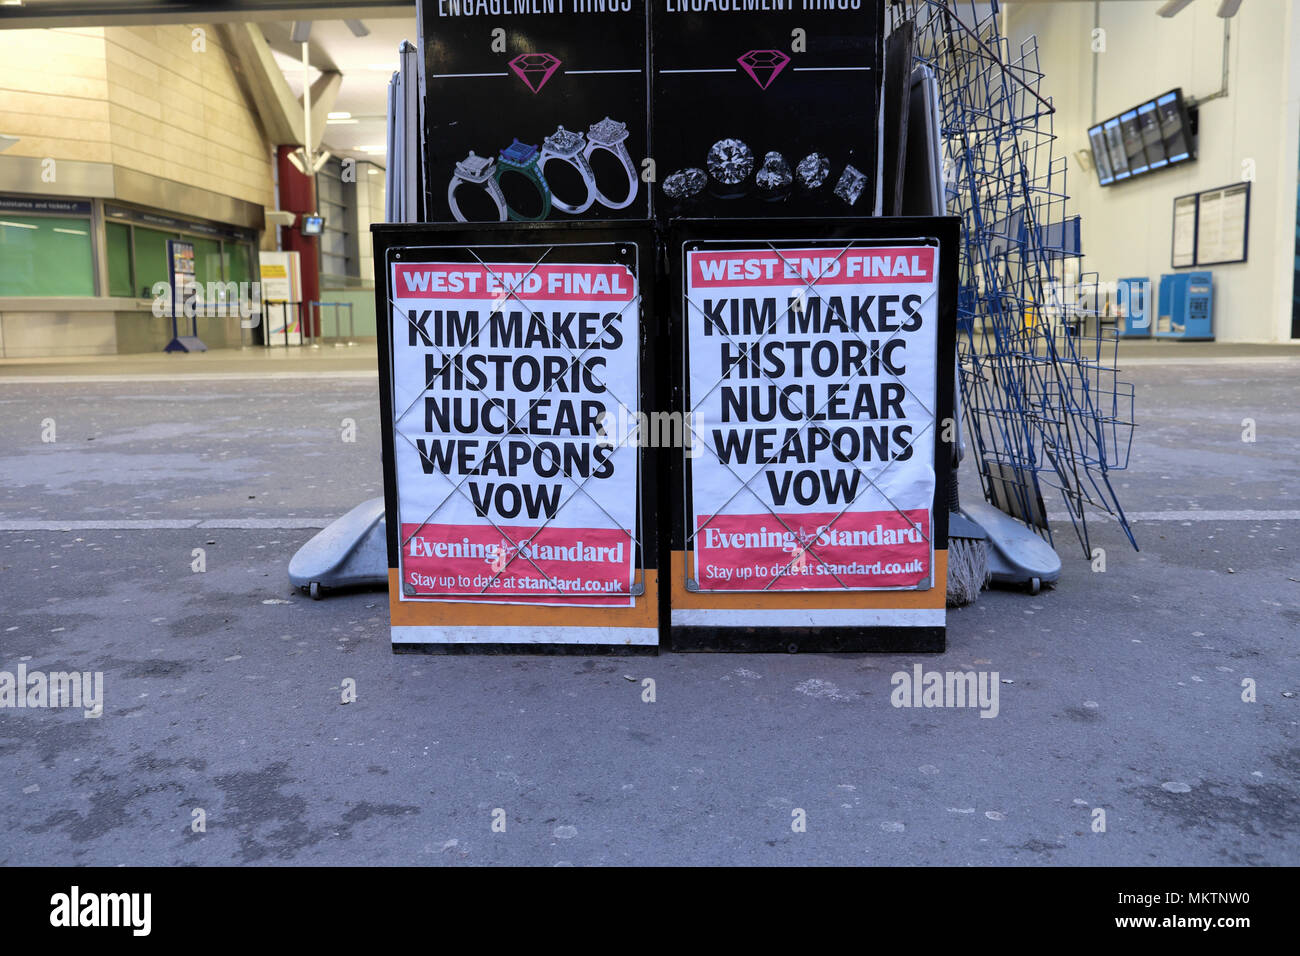 Evening Standard newspaper poster advert 'Kim Makes Historic Nuclear Weapons Vow'  outside a street news seller newsstand 28 April 2018 in London UK - Stock Image